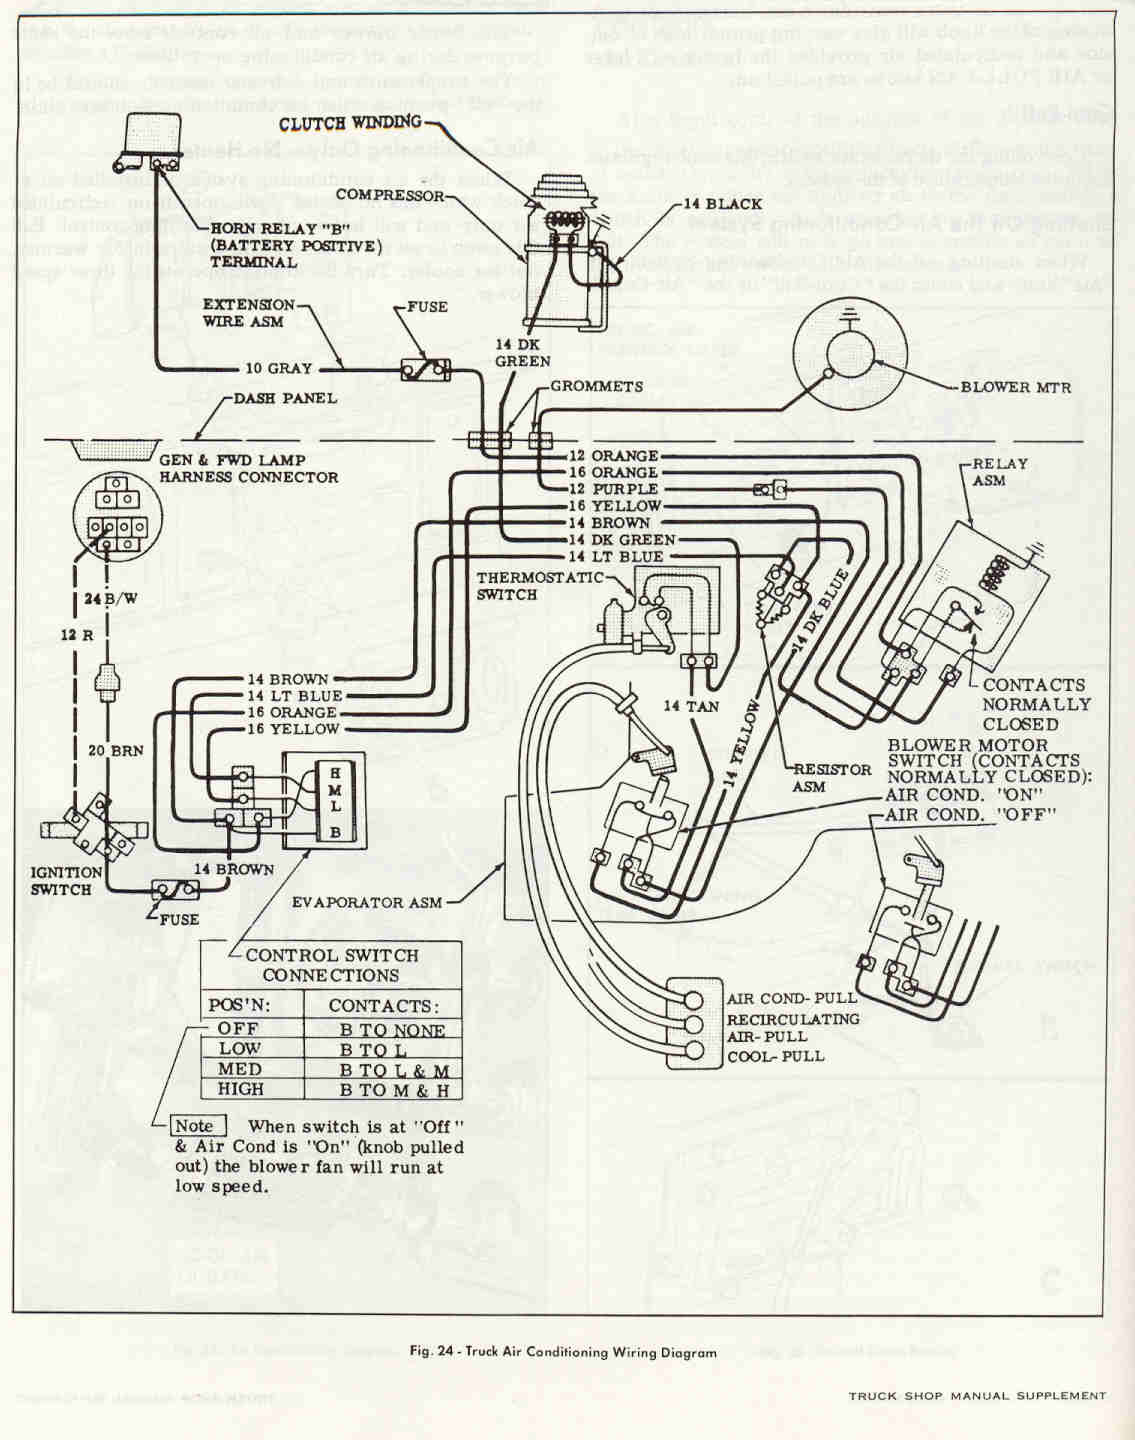 Wiring Diagram For 1980 Chevy C10 : 33 Wiring Diagram